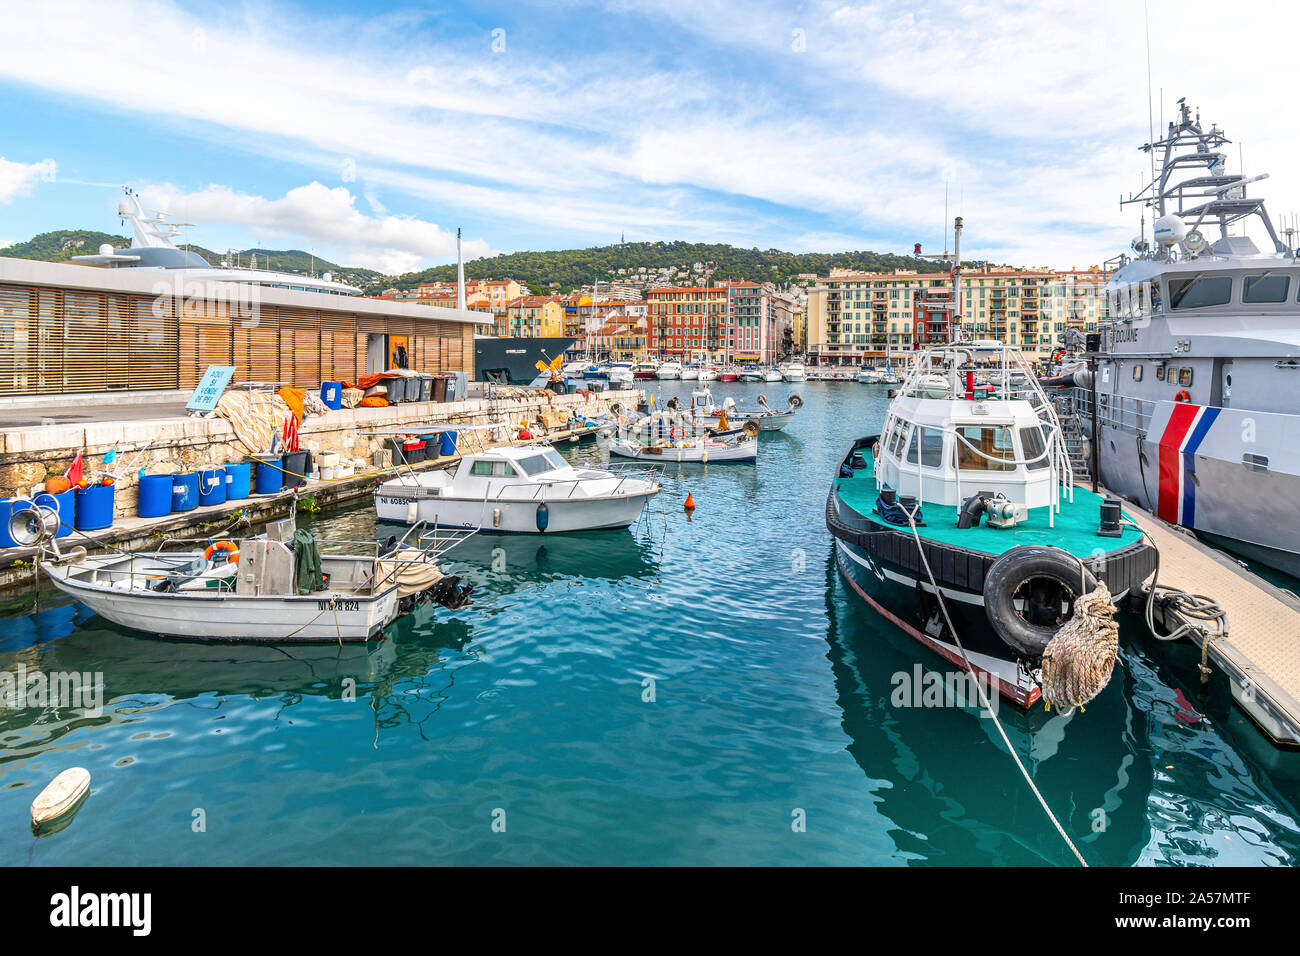 An assortment of boats and watercraft in the old harbor of Port Lympia in the city of Nice France, on the Mediterranean Sea at the French Riviera. Stock Photo